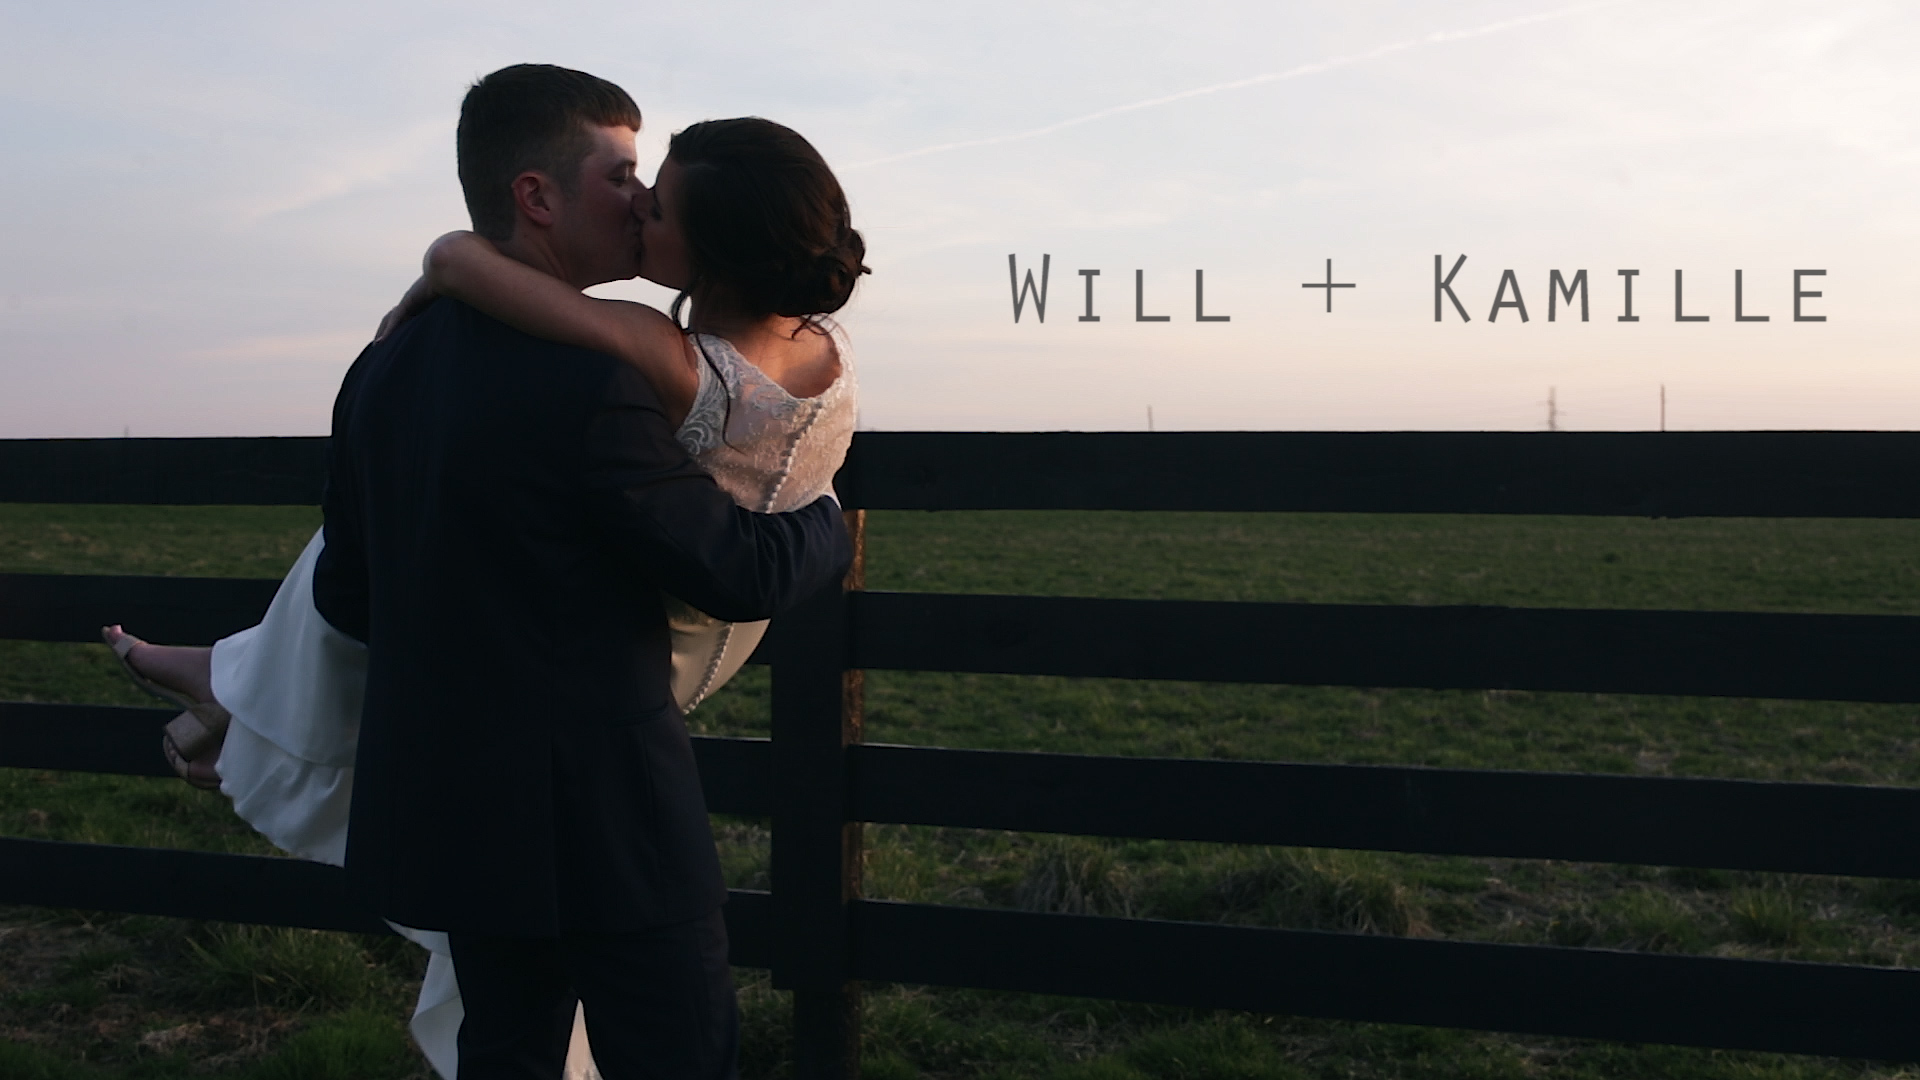 Will + Kamille | Hanover, Indiana | A Family Farm